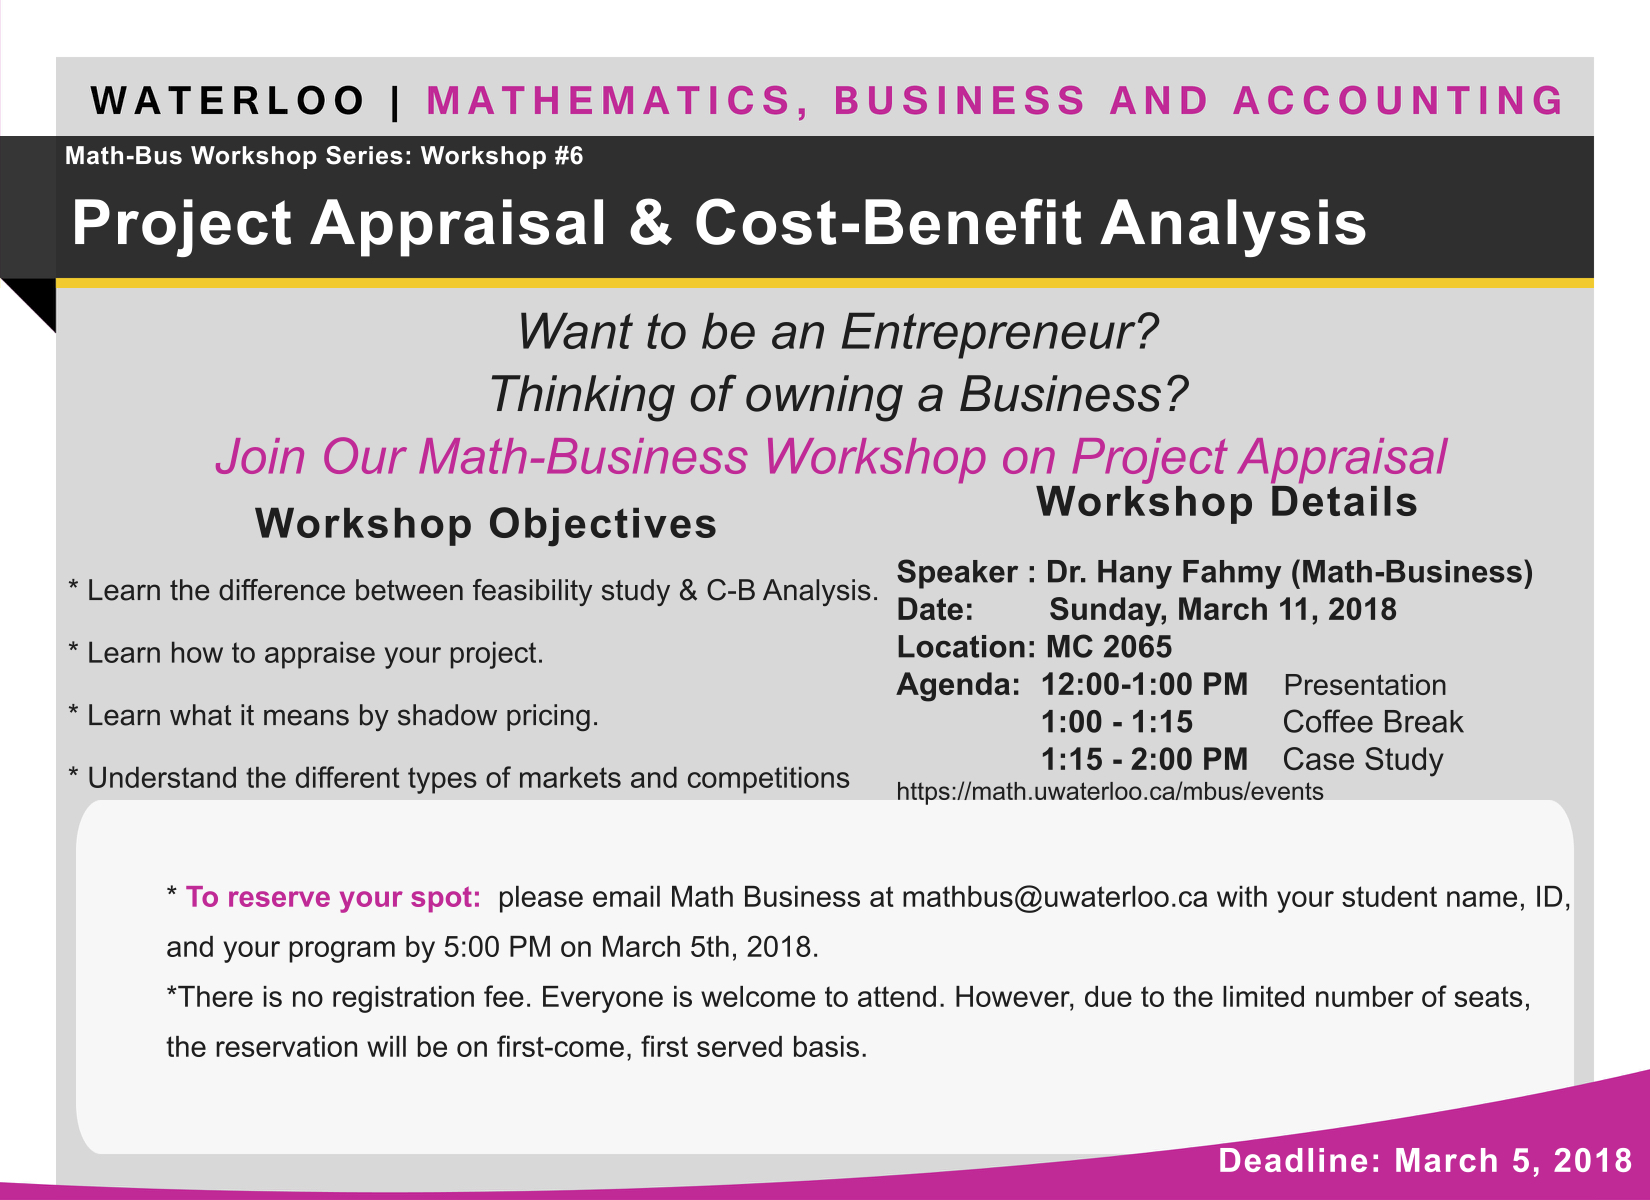 Poster for the Project Appraisal & Cost-Benefit Analysis Workshop on Sunday March 11, 2018